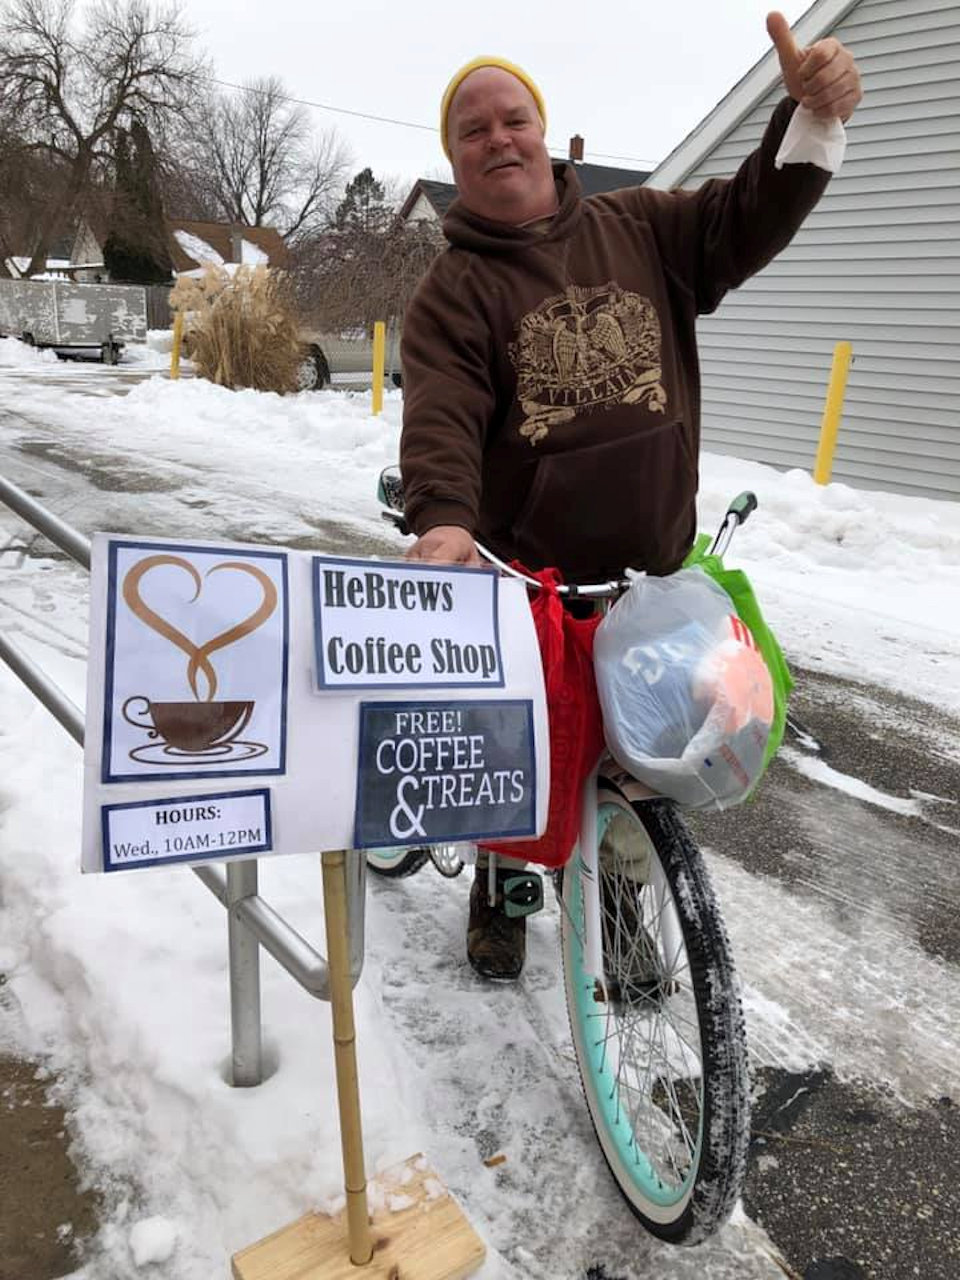 Man on bike goes for HeBrews Coffee